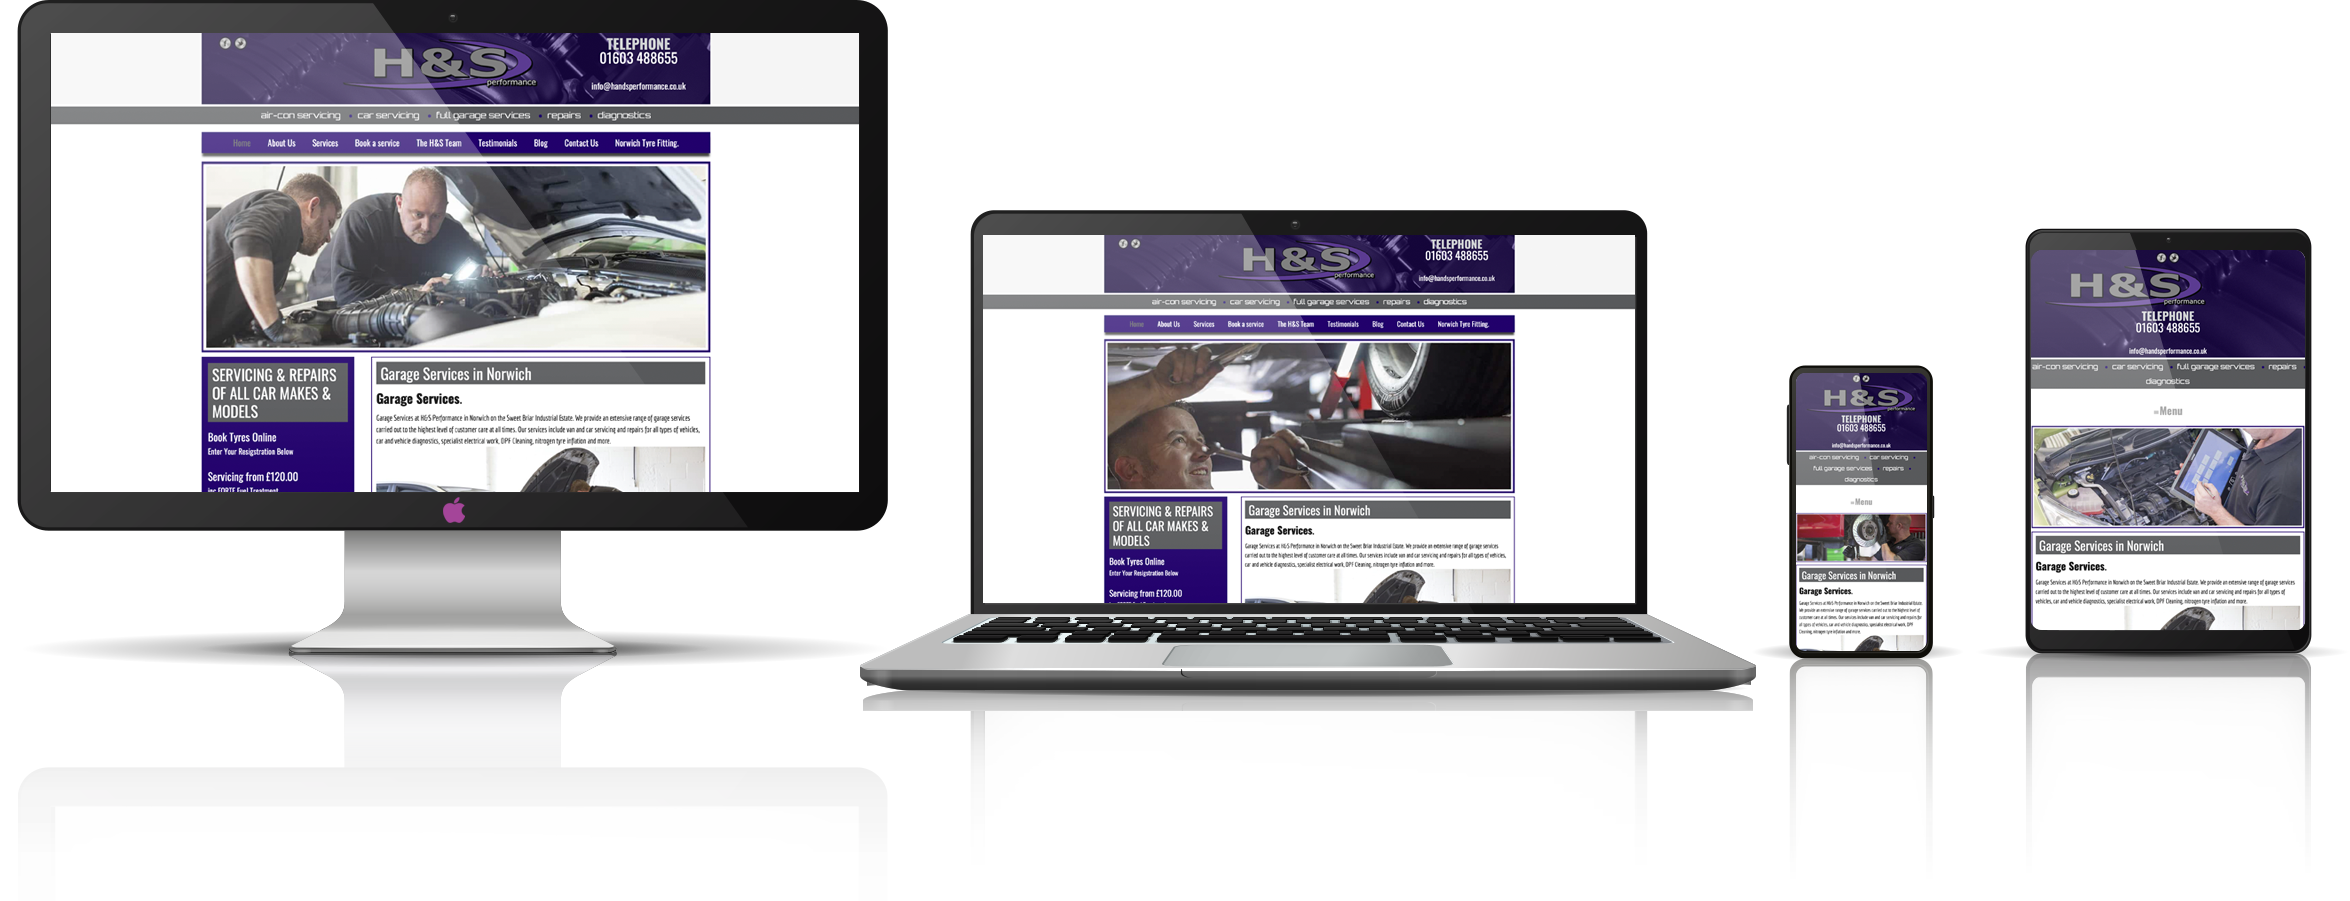 The H&S Performance fully responsive mock-up images showing desktop, laptop, tablet, and mobile phone devices.